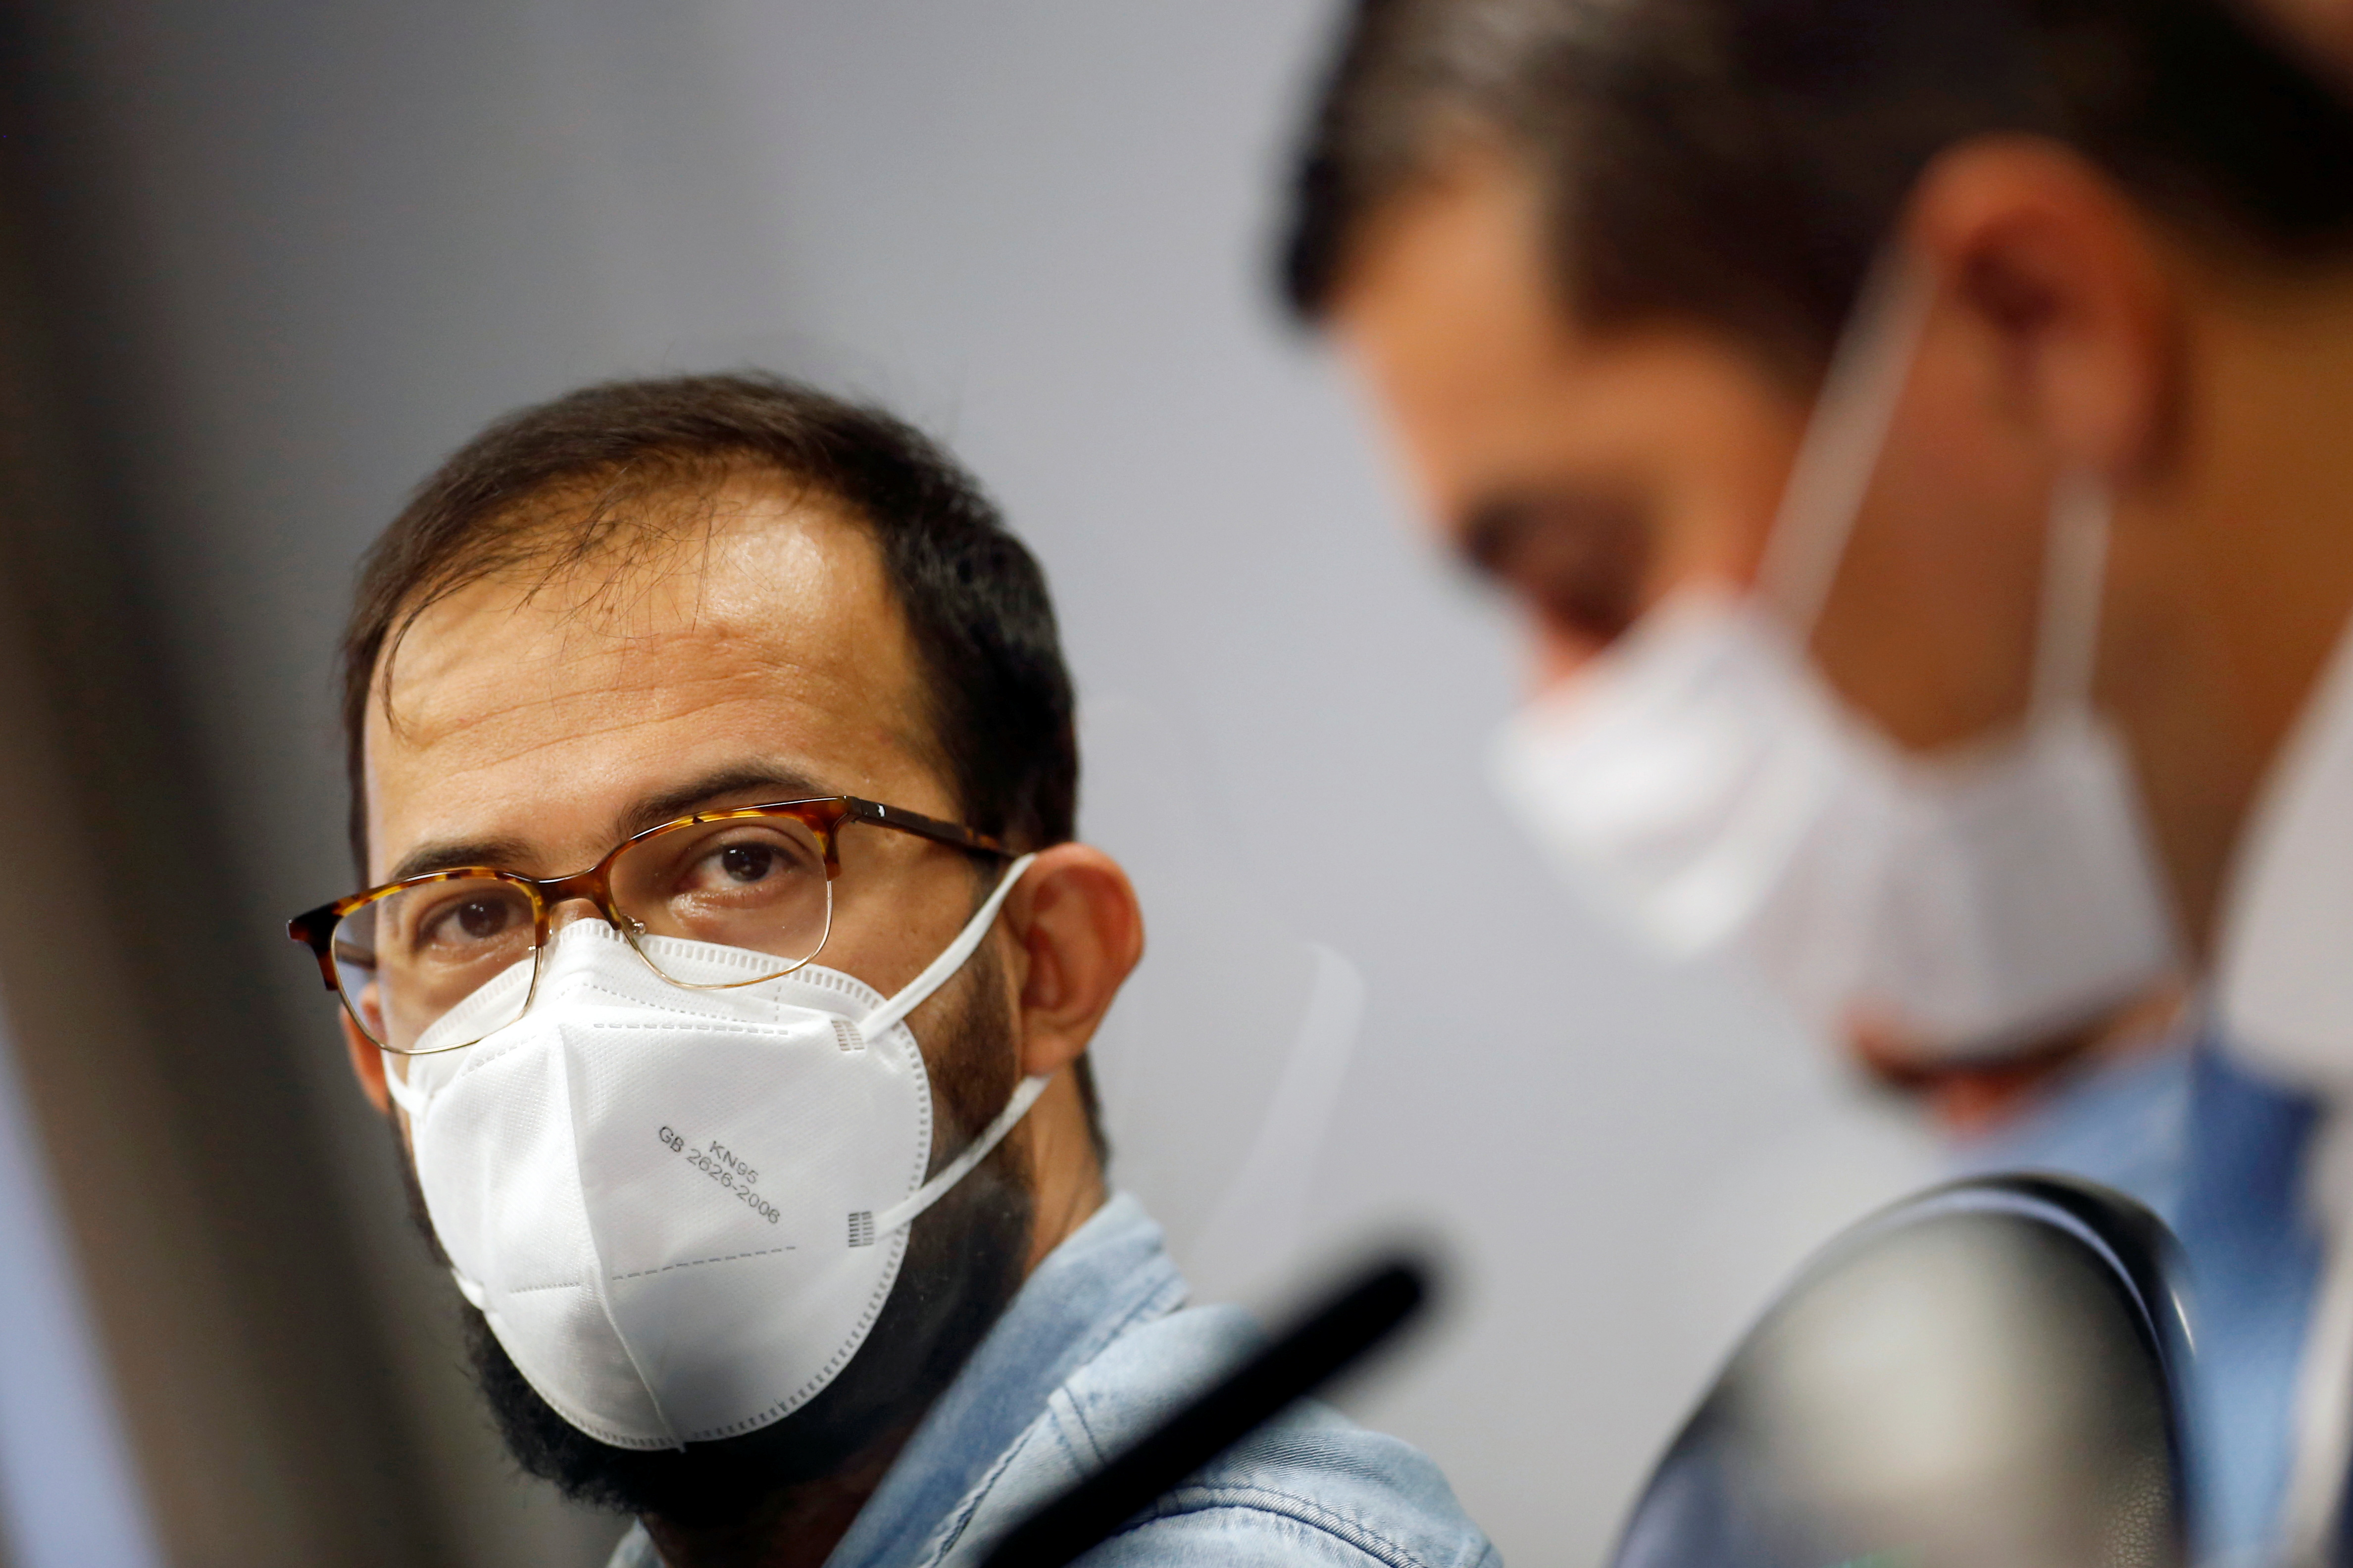 Employee of the Ministry of Health, Luis Ricardo Fernandes Miranda, attends a meeting of the Parliamentary Inquiry Committee (CPI) to investigate government actions and management during the coronavirus disease (COVID-19) pandemic, at the Federal Senate in Brasilia, Brazil June 25, 2021. REUTERS/Adriano Machado